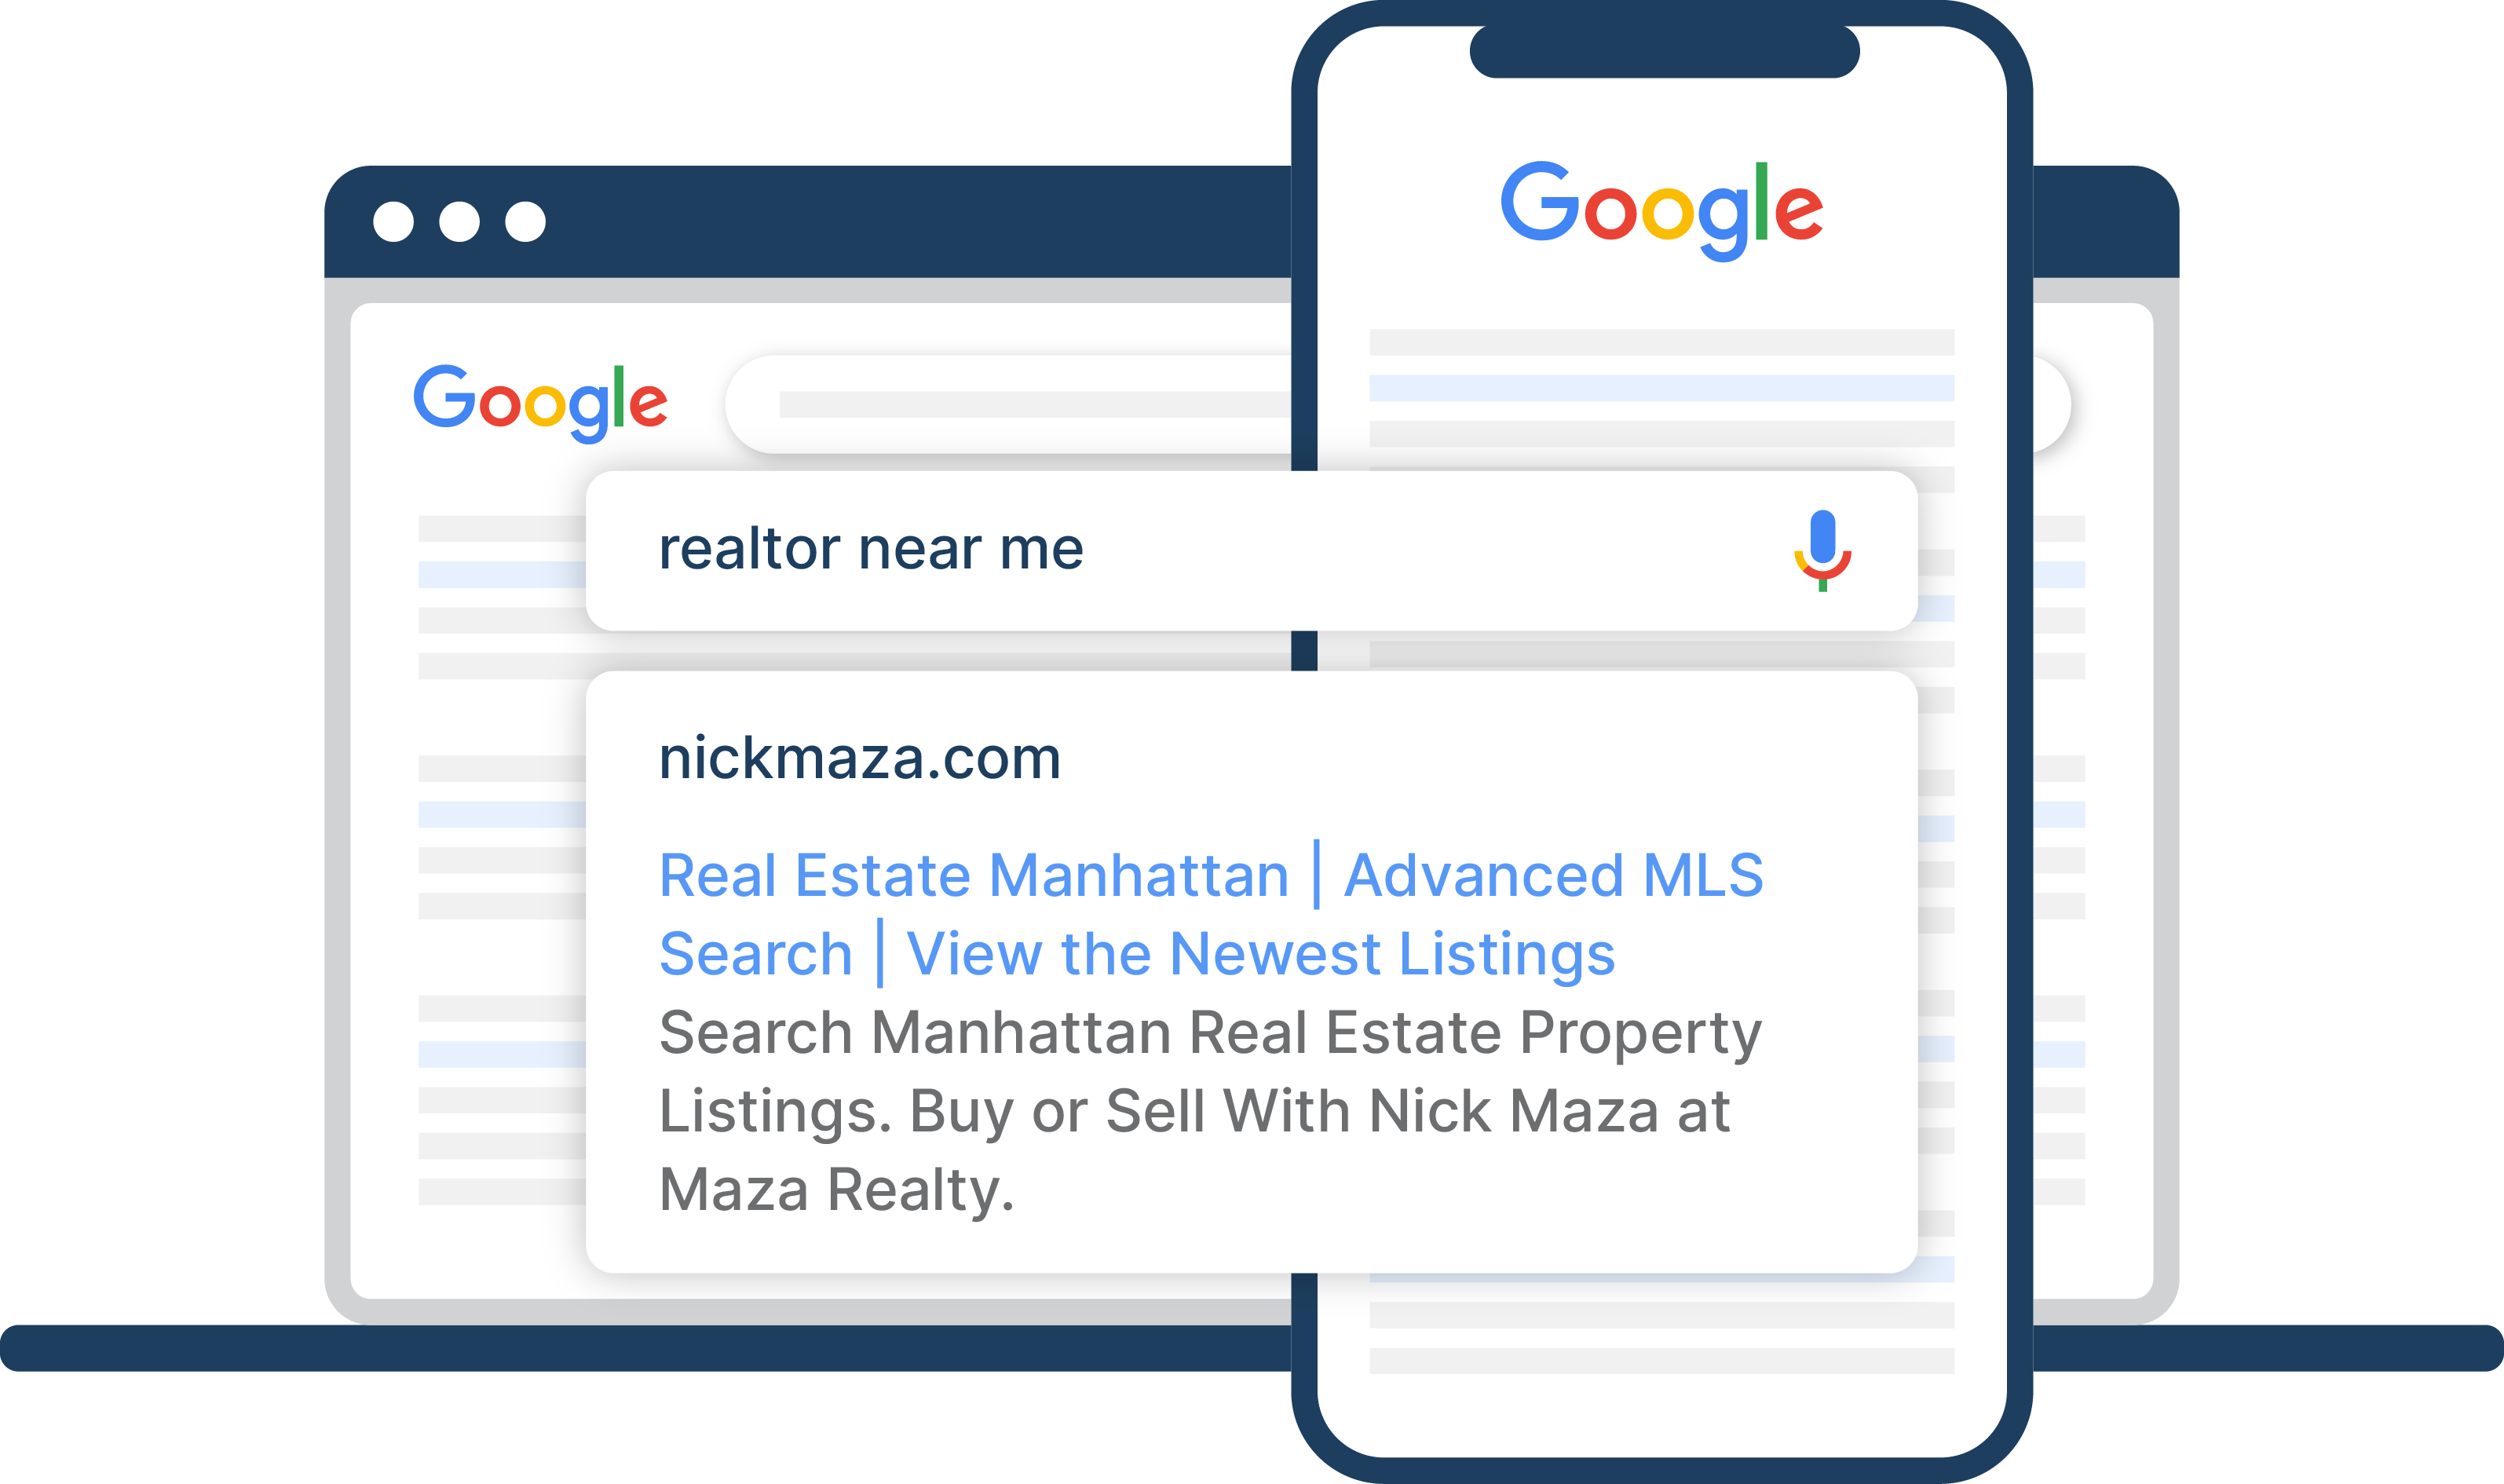 Google search for 'realtor near me' displaying a Google Ad from a realtor Nick Manza who does Real Estate Marketing with RealDigiAds